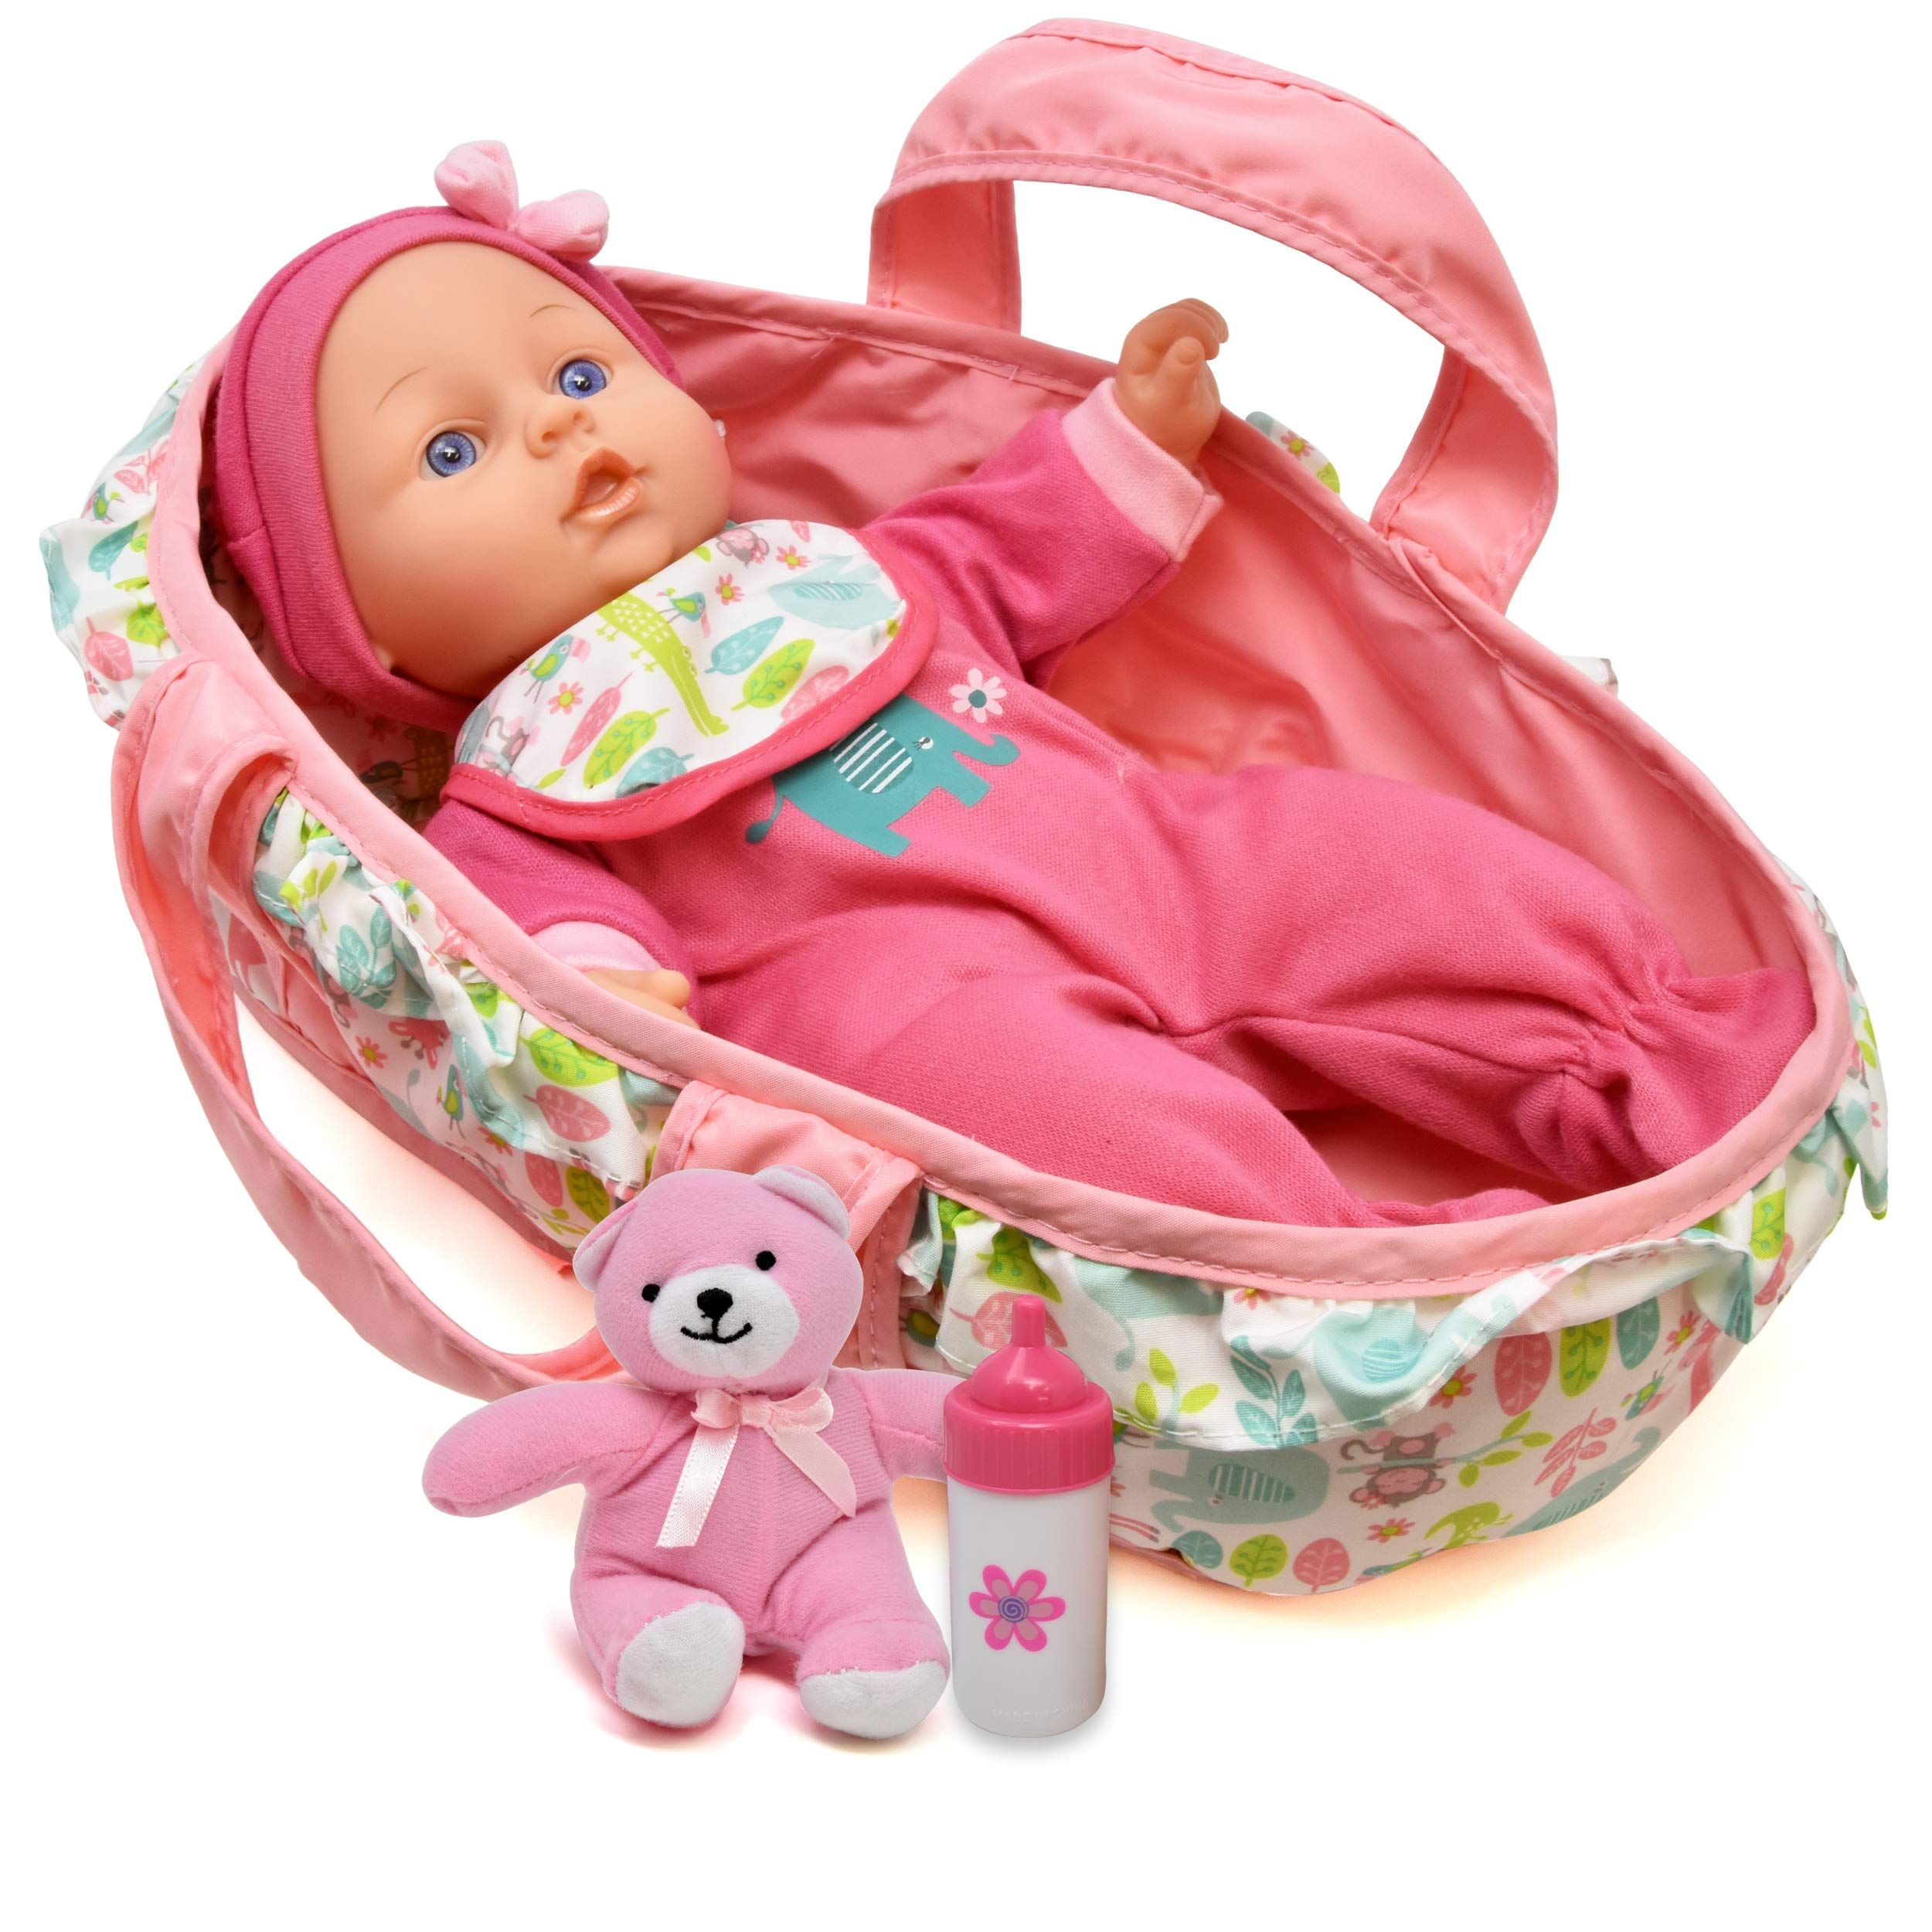 Baby Doll Feeding Set 12 Inch Soft Body Baby Doll With Carrier Bassinet Bed And Pillow Includes Play Doll Re Baby Dolls Baby Doll Accessories Baby Doll Carrier